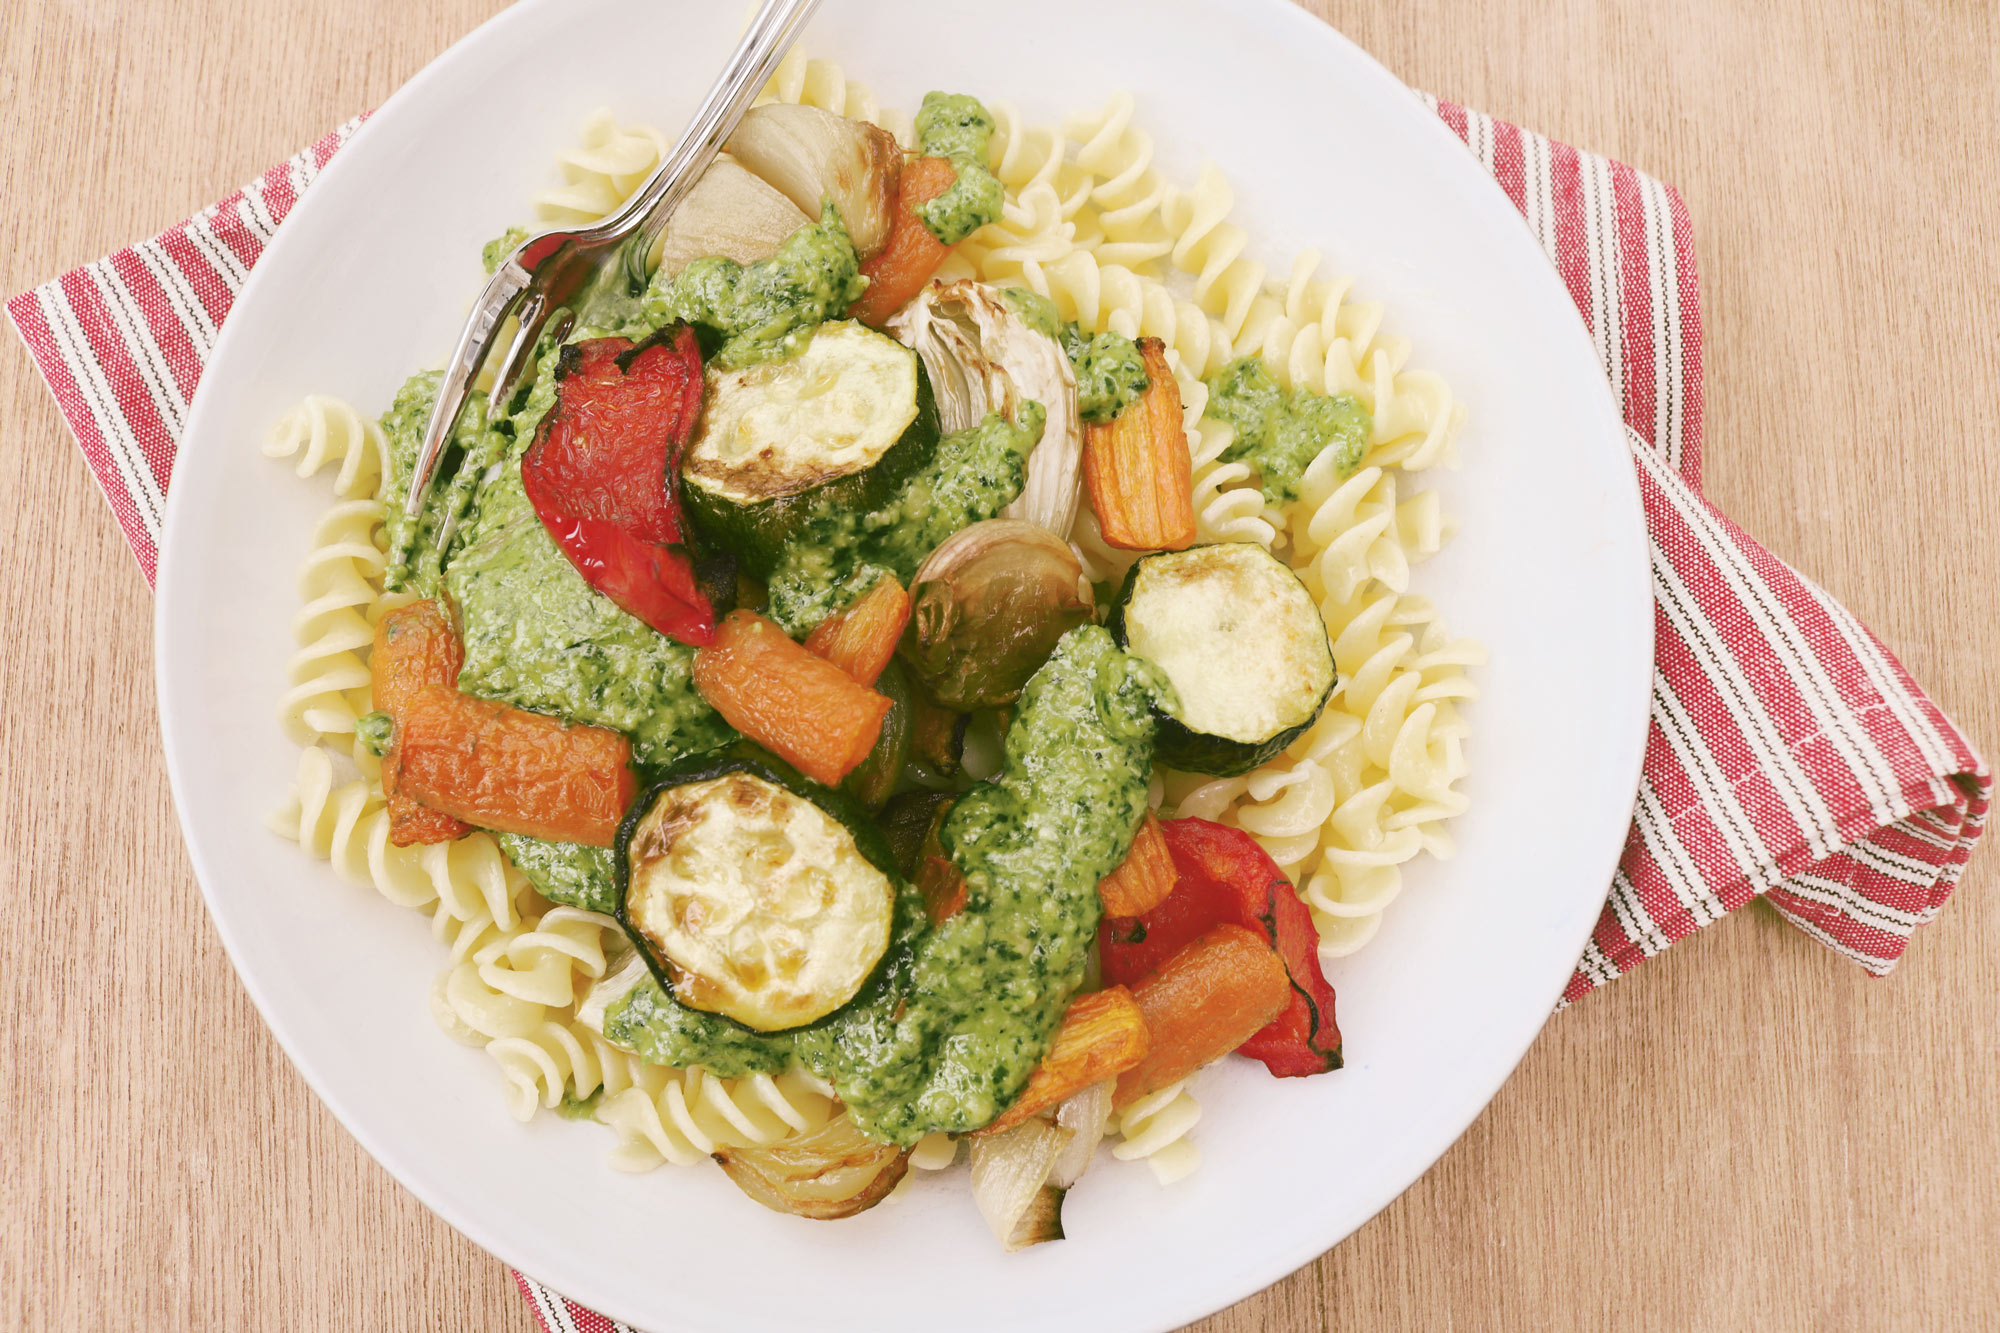 Roasted Vegetables with Pasta and Almond Pesto Dressing